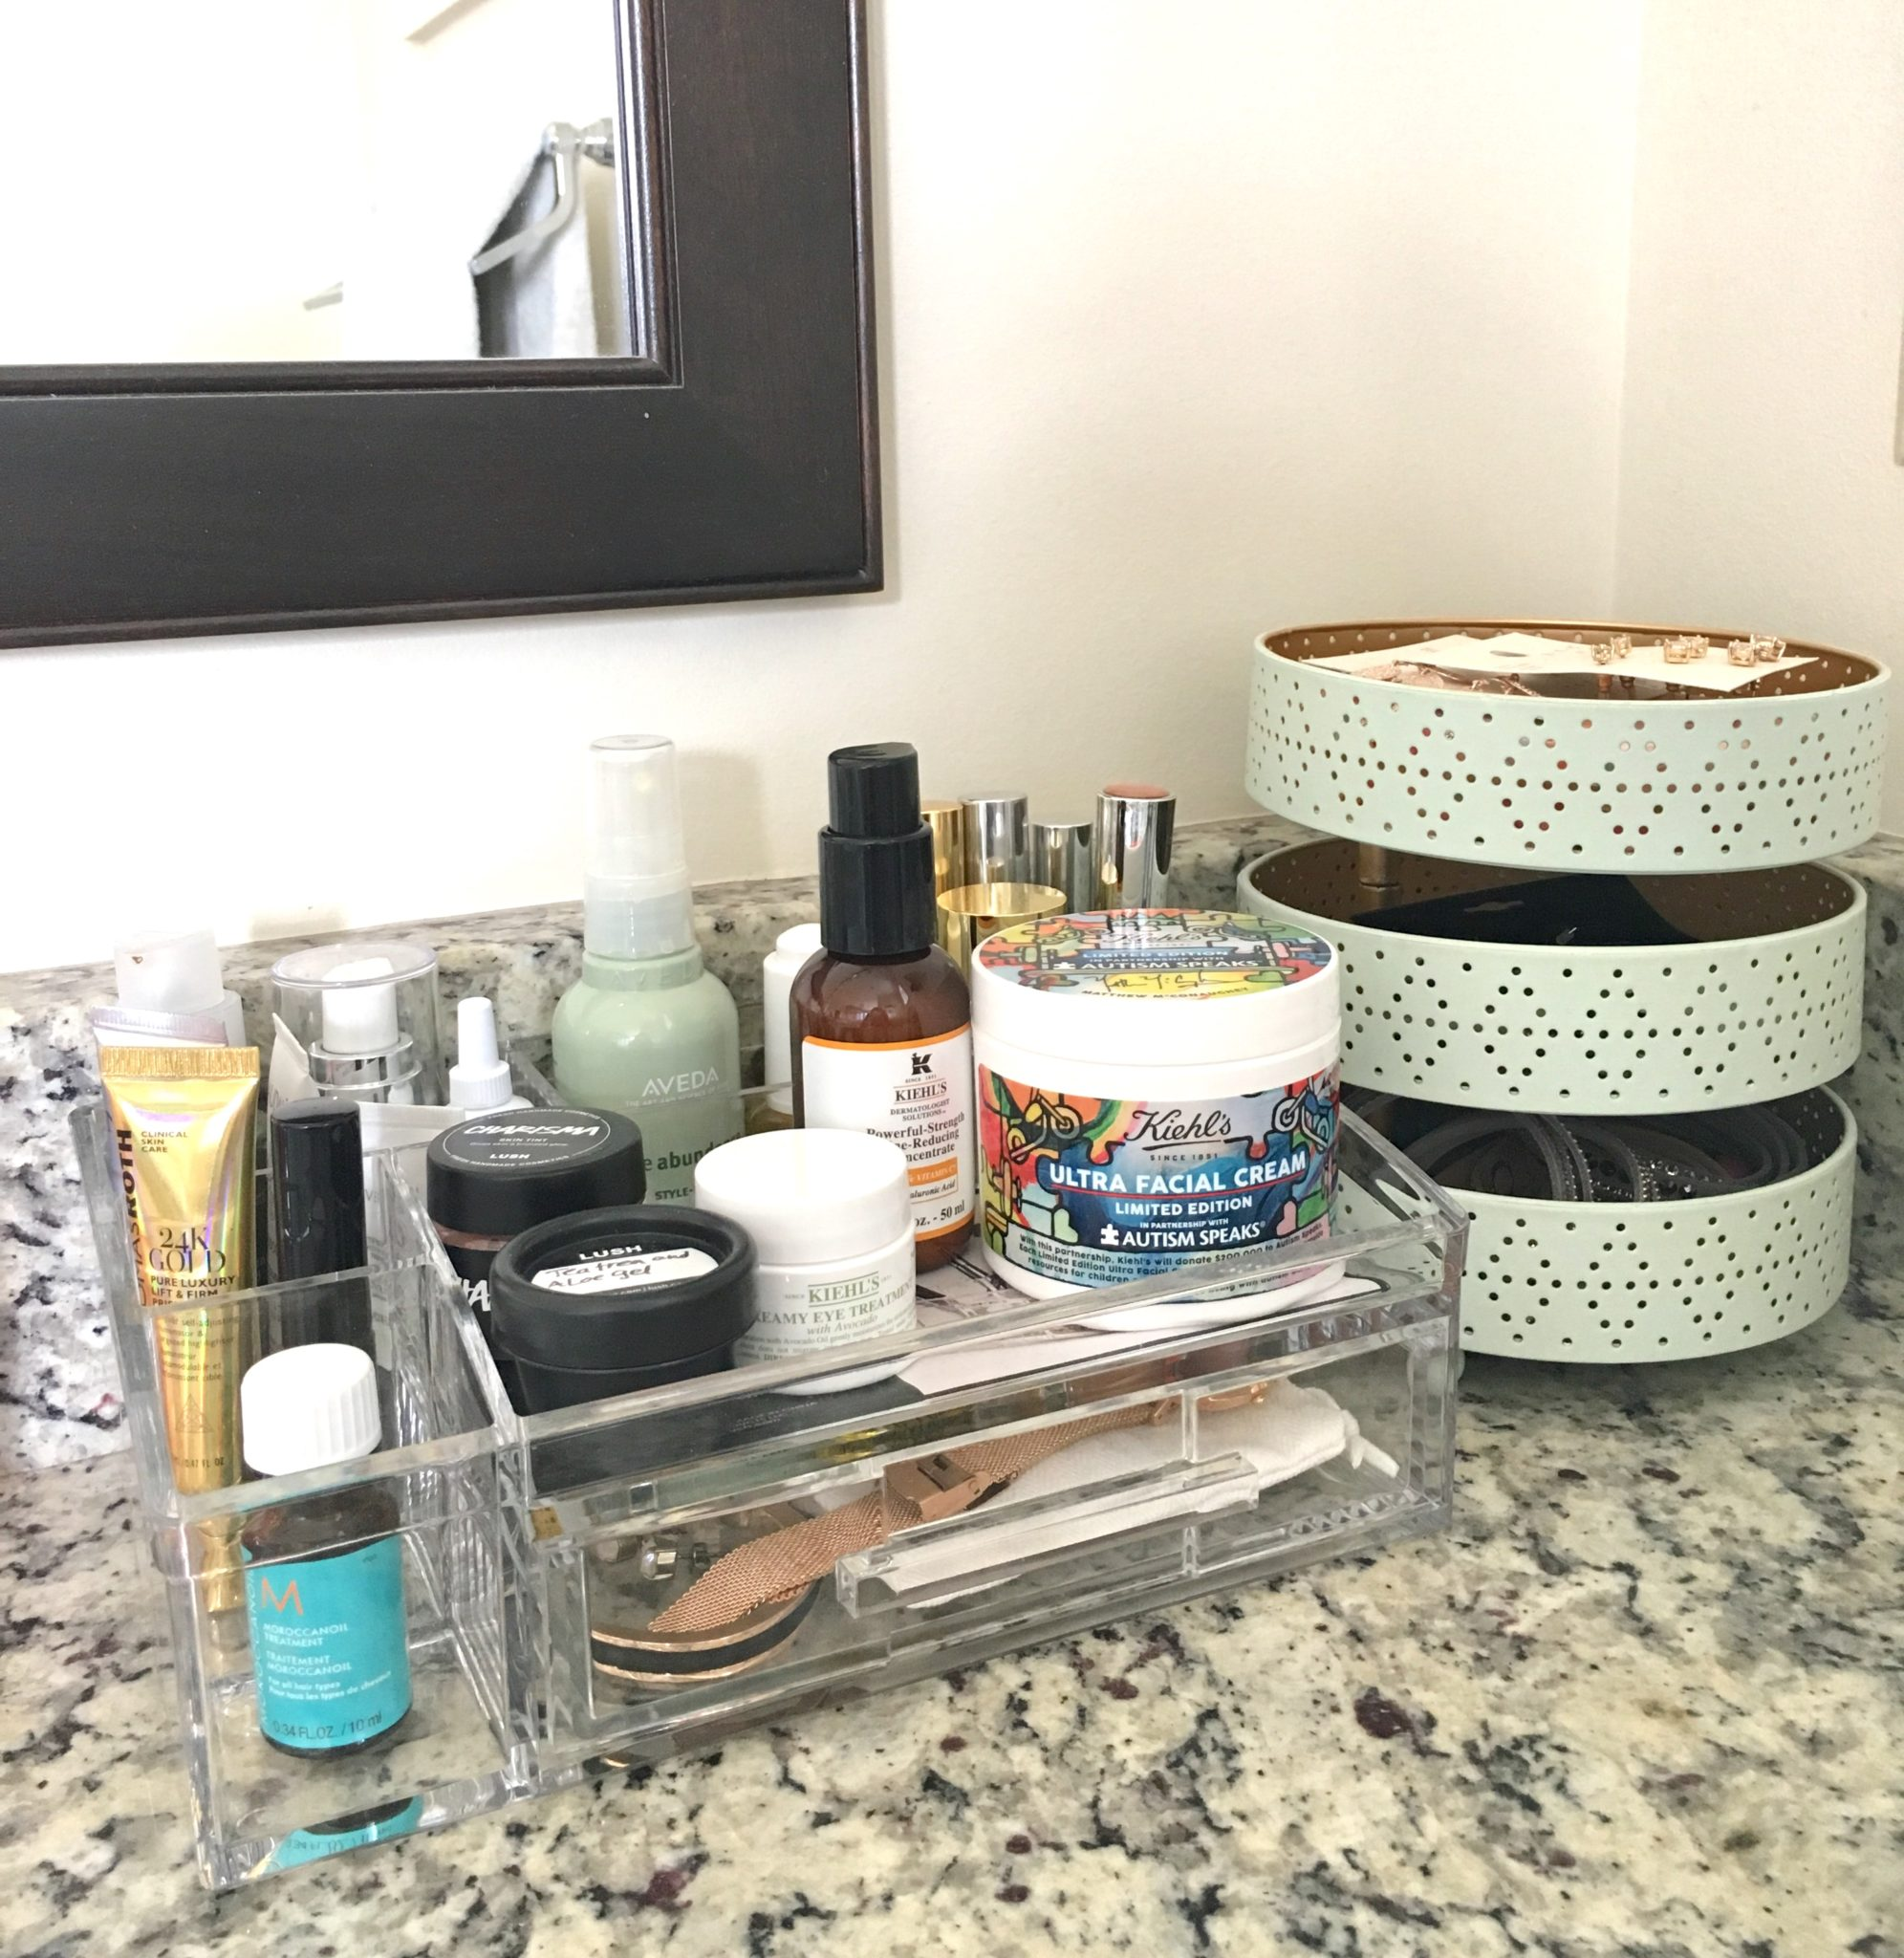 counter-bathroom-organization